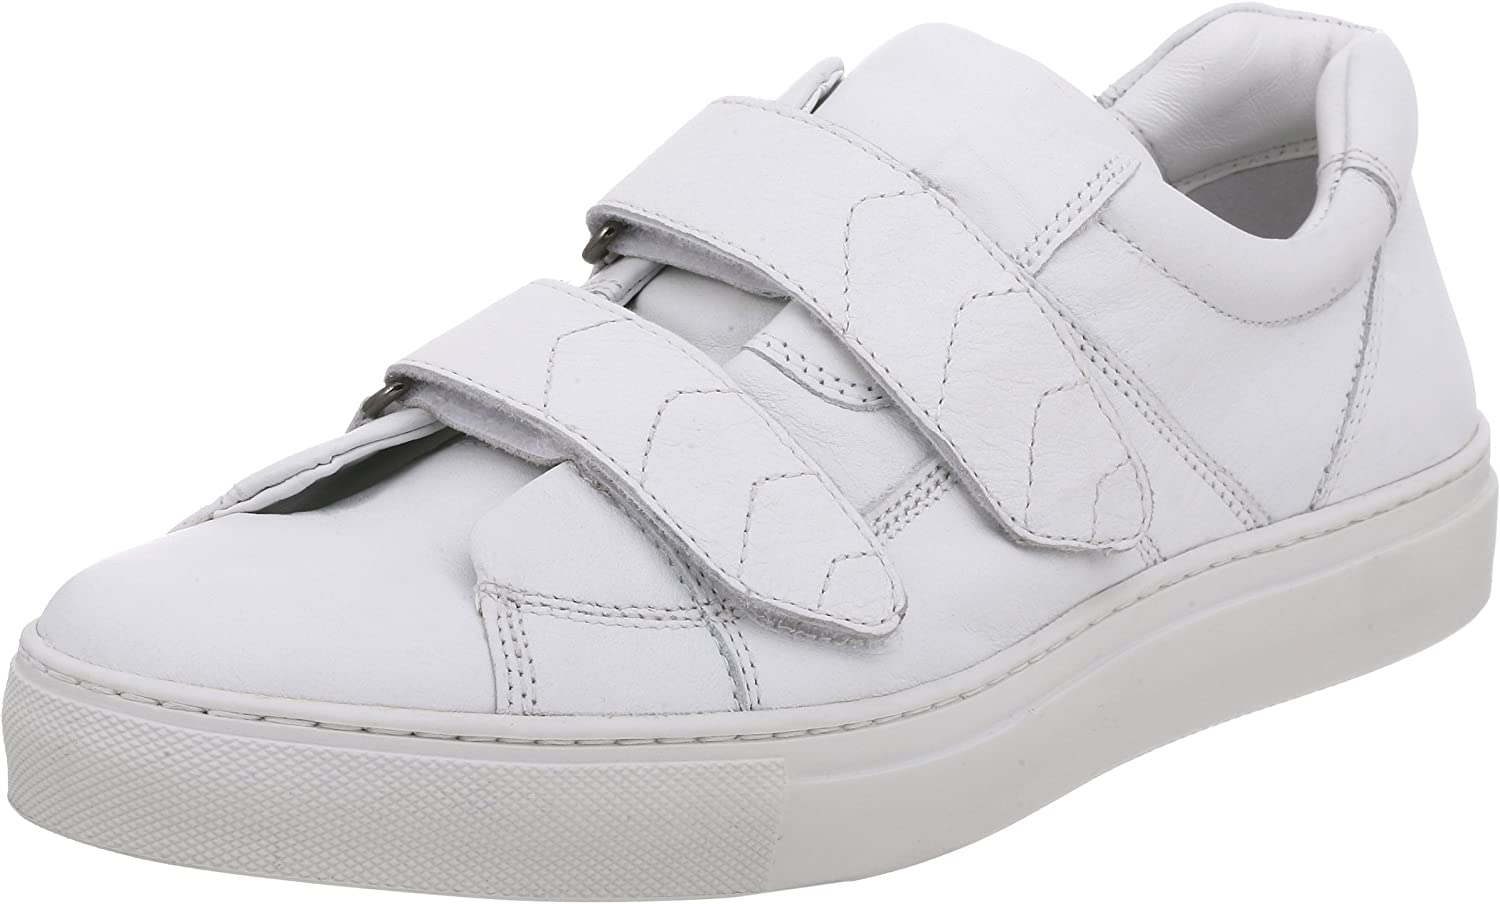 Kenneth Cole Cheap Time sale mail order shopping New York Men's Sneaker Fashion Crescent Moon